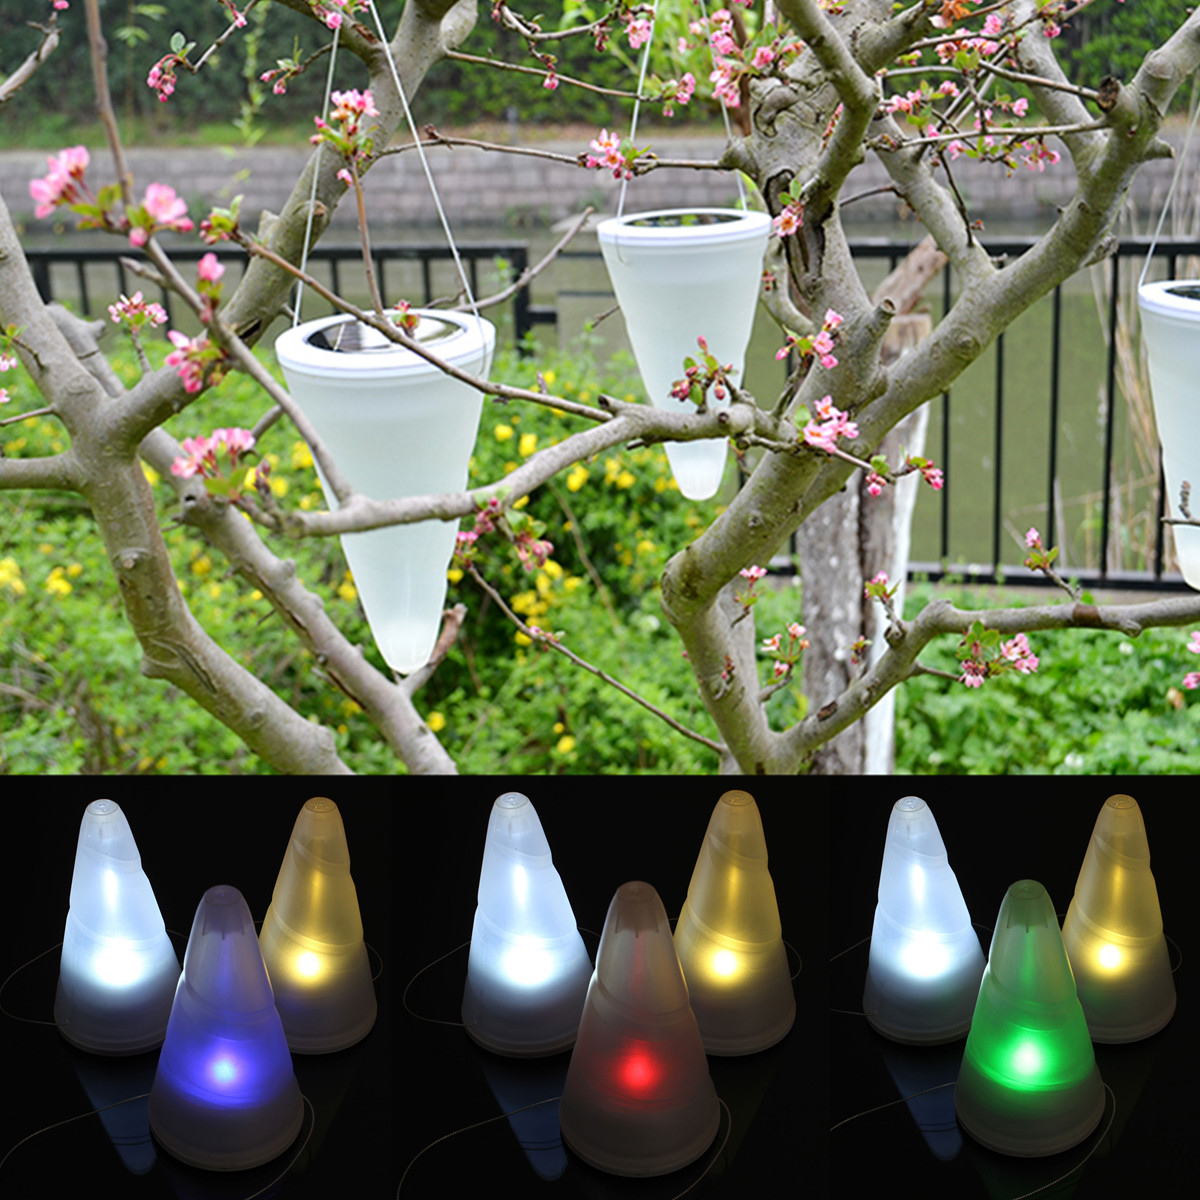 Automatic Solar Powered Cone Lights Garden Outdoor Cornet LED Lamp Hanging  Lantern Drop,RGB Color